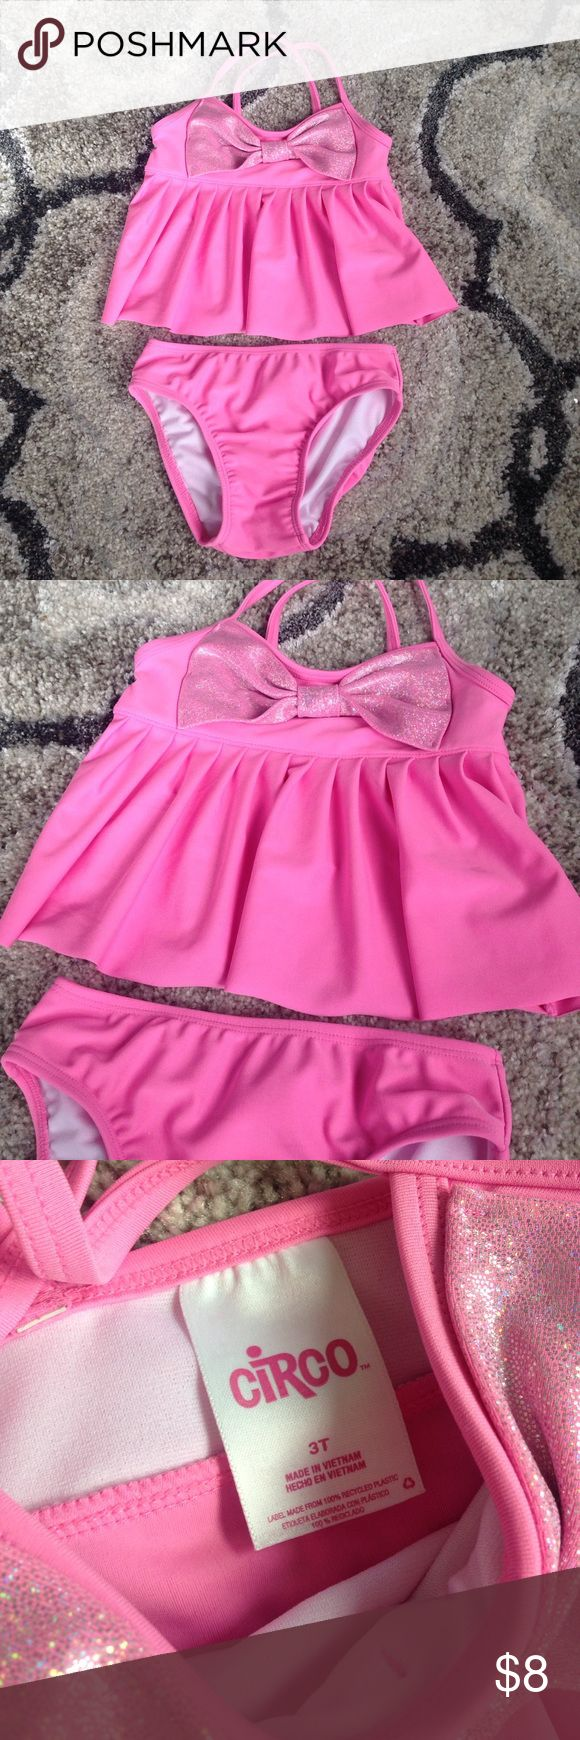 Circo pink tankini swimsuit Washed but not worn! Excellent condition! Pretty pink with sparkly bow. Circo Swim